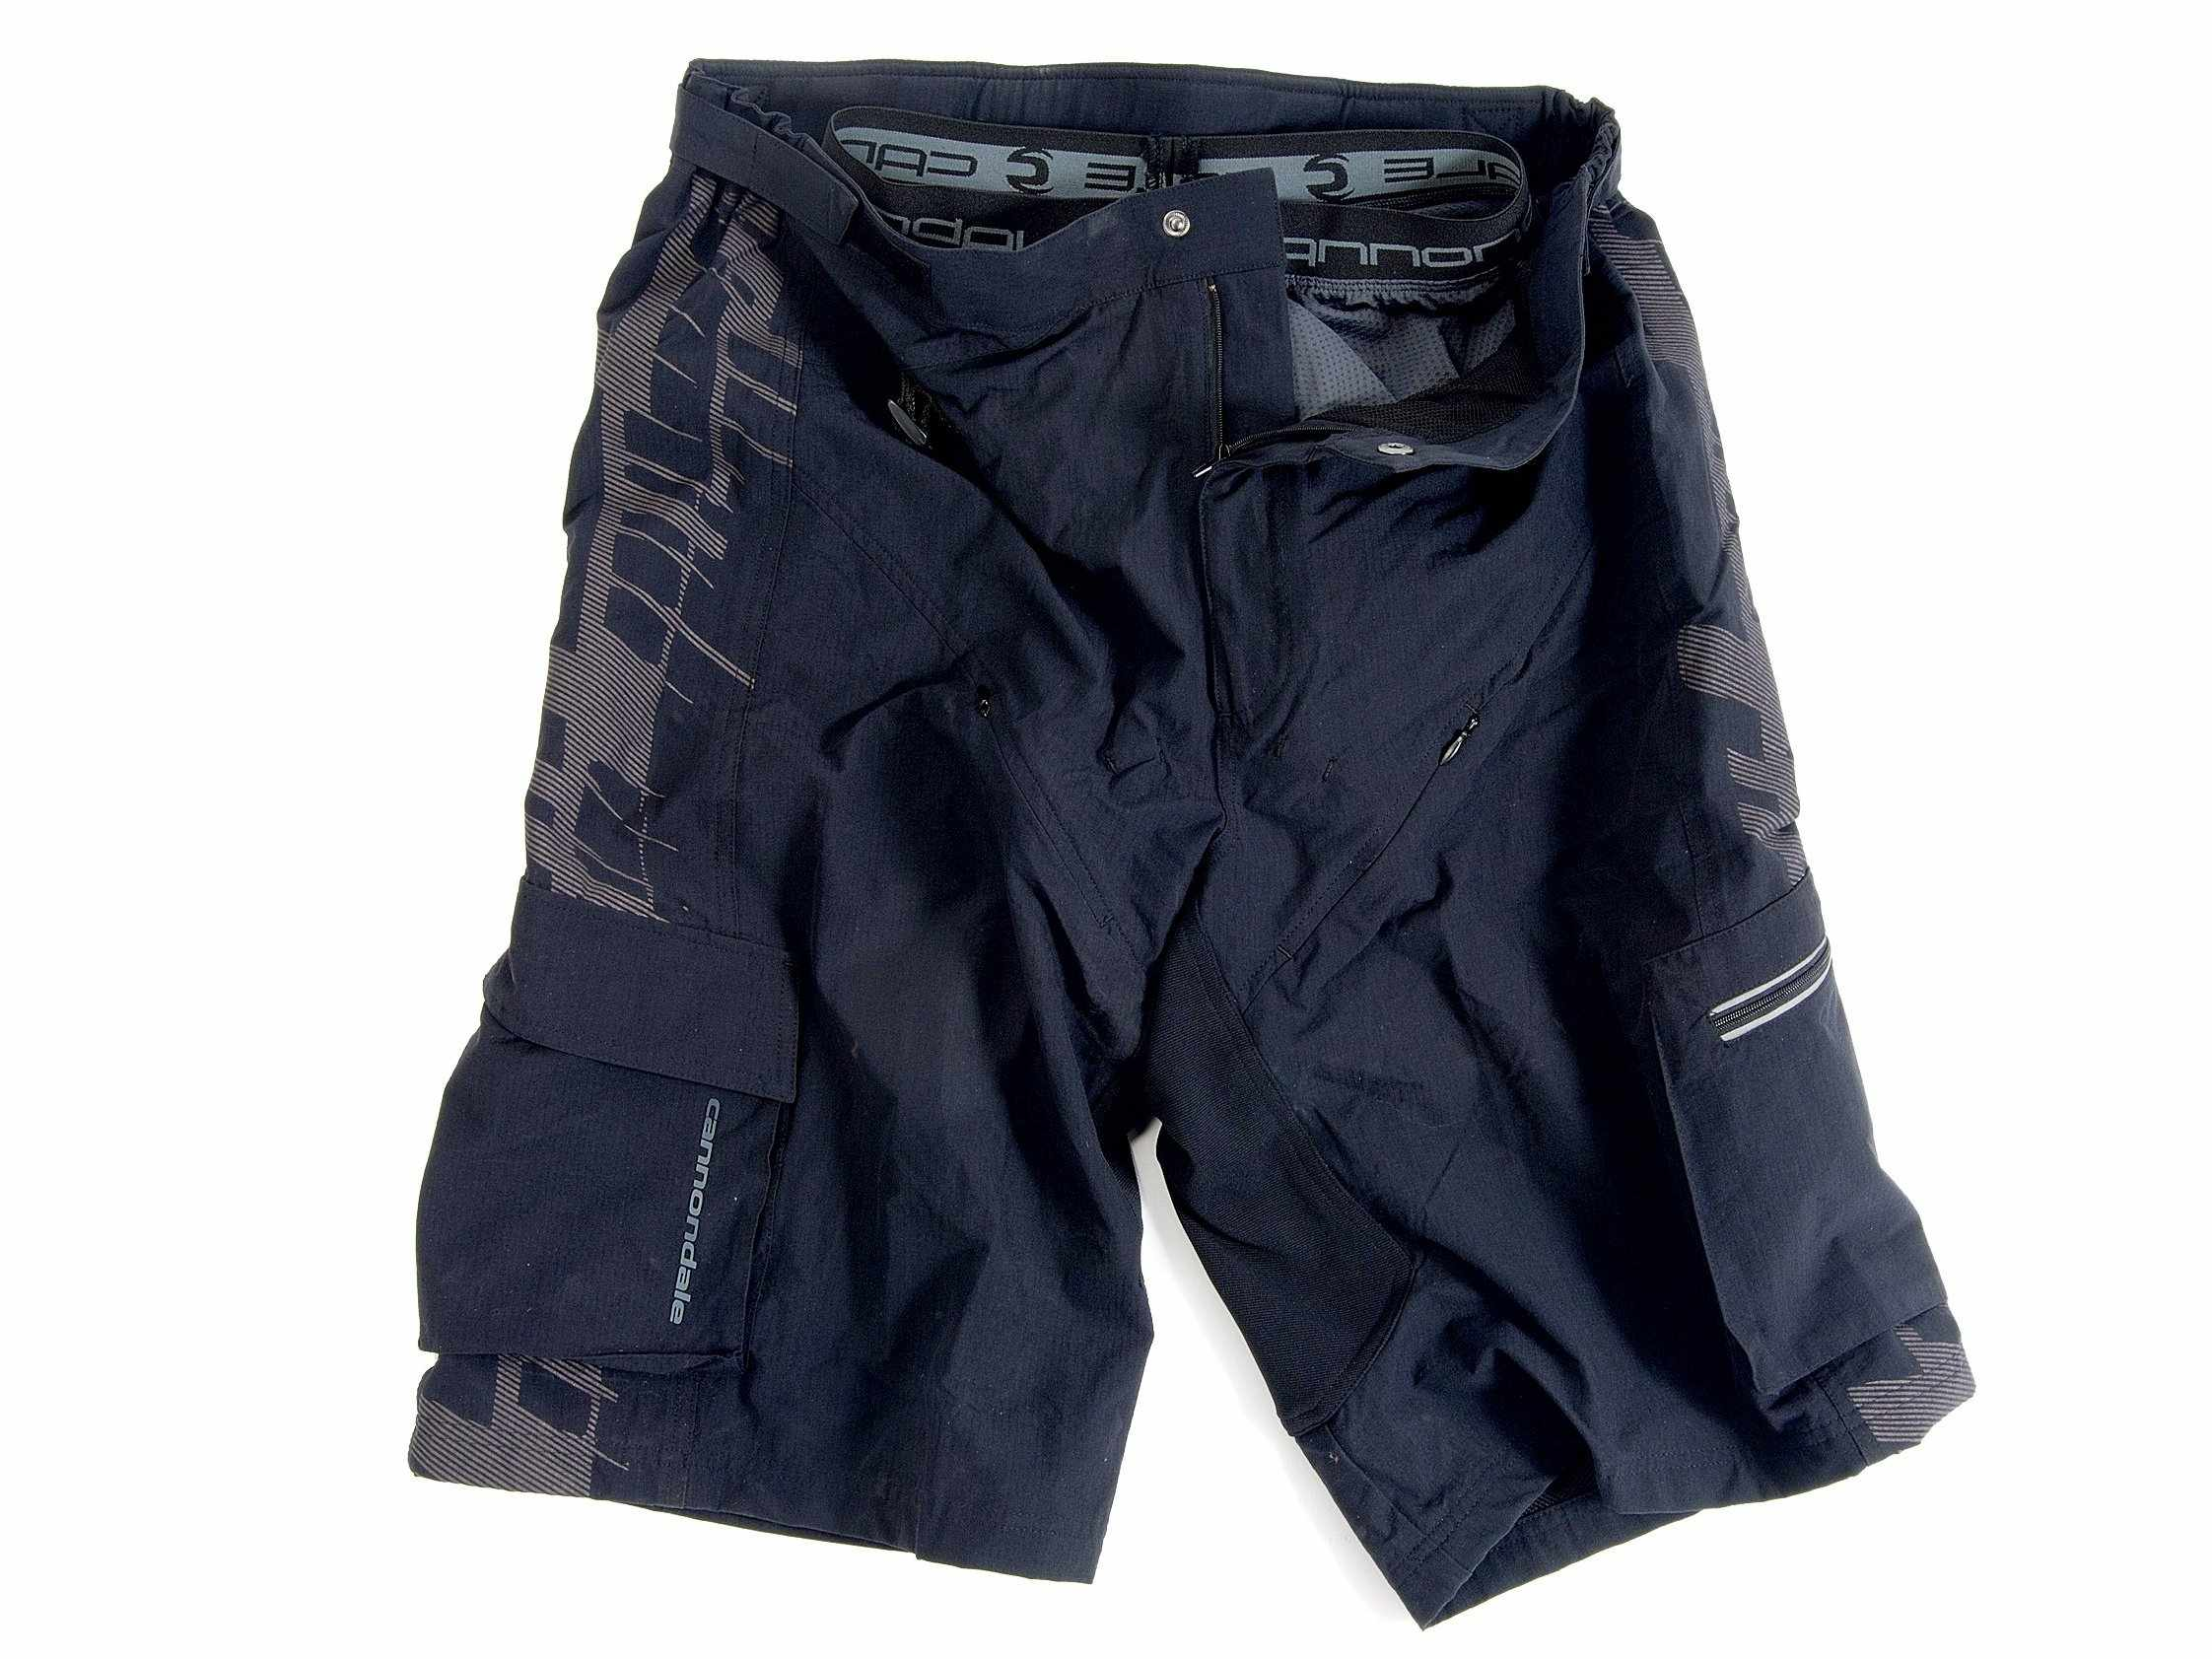 The Grind shorts represent good value for money, and a good performance.